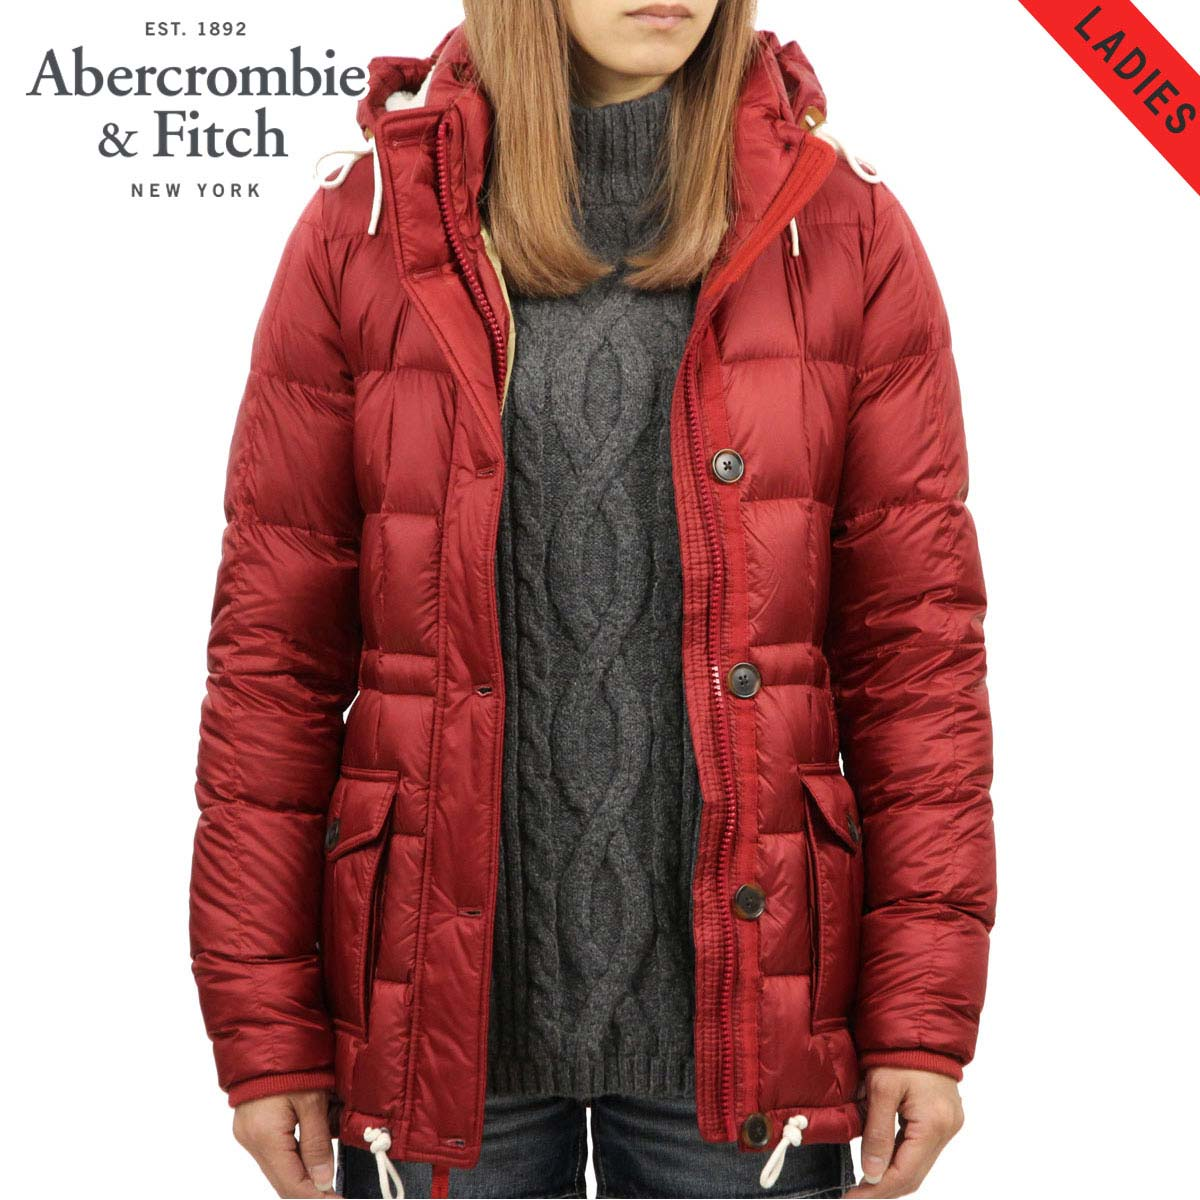 b46b814ea ABBA black outer lady's regular article Abercrombie & Fitch jacket down  jacket DOWN-FILLED PUFFER COAT 144-442-0590-511